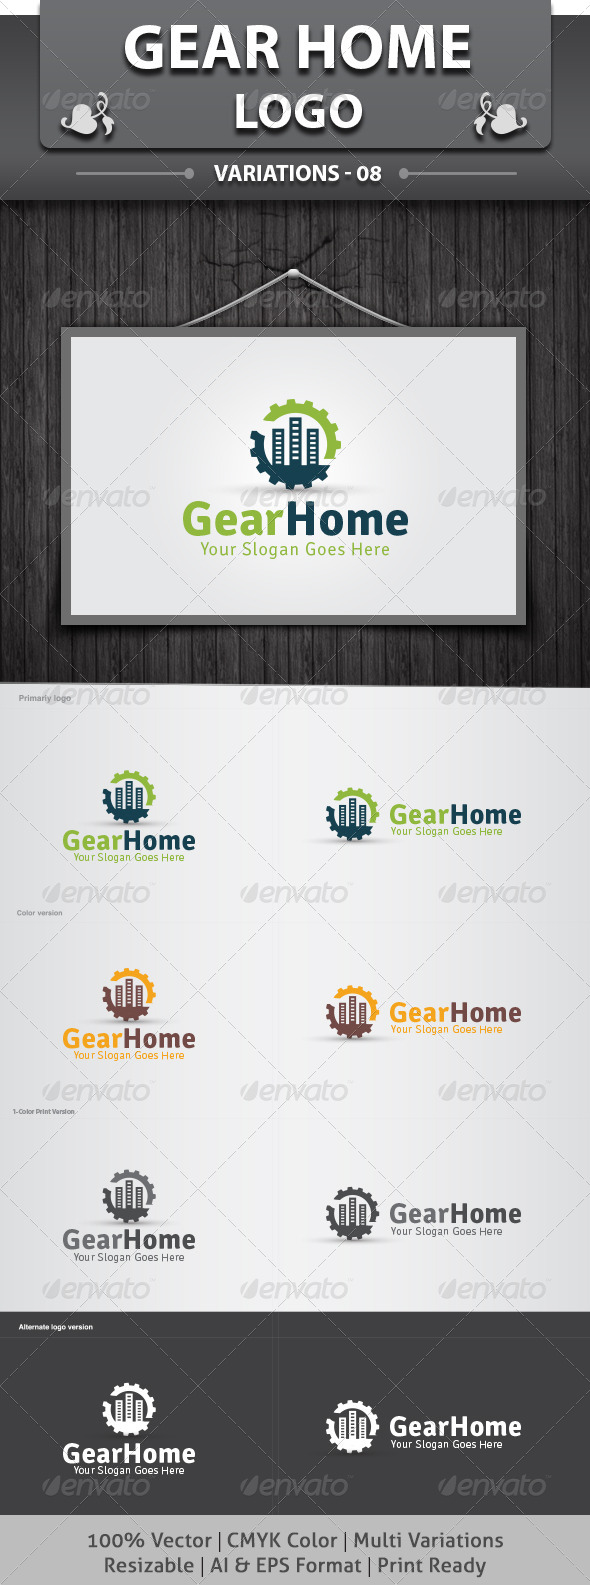 Gear Home Logo